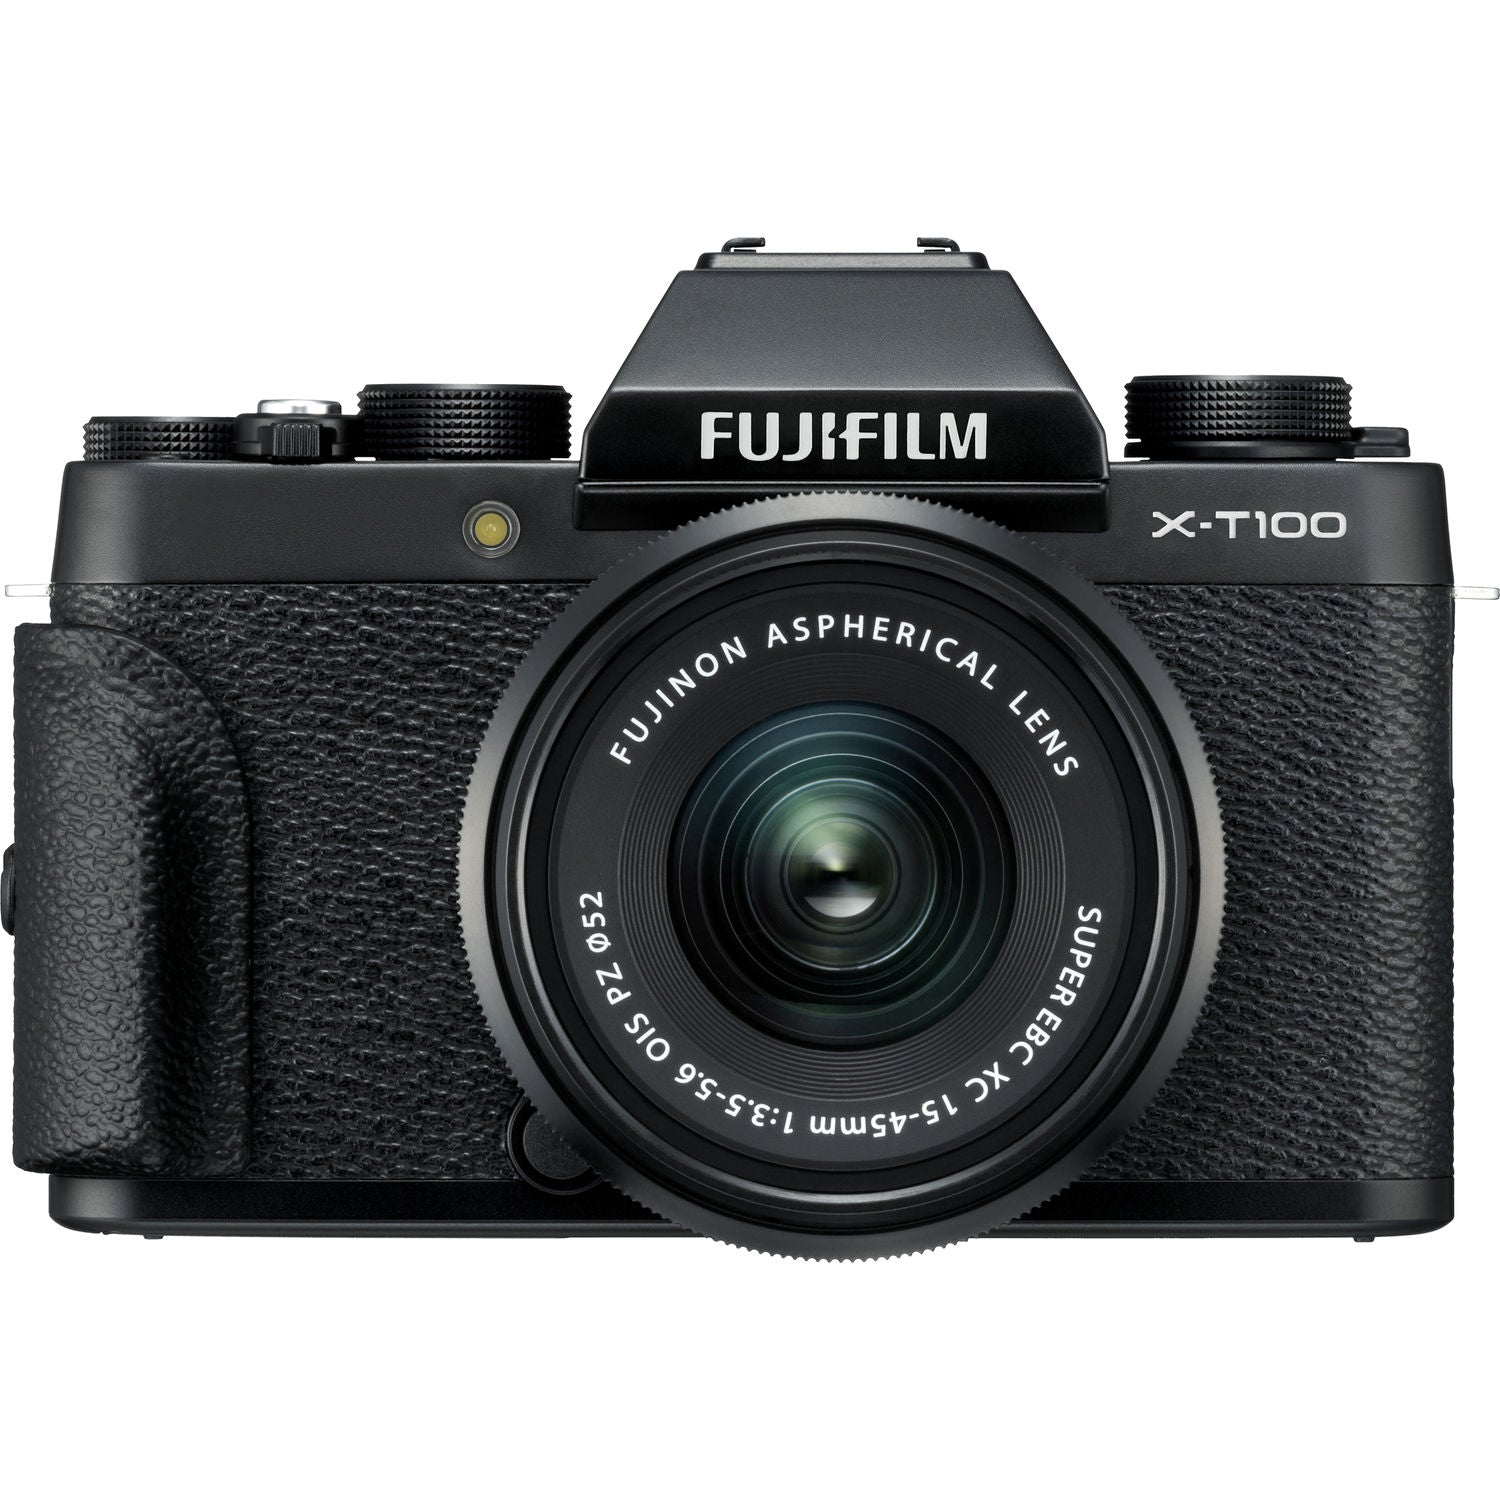 FUJIFILM X-T100 Camera with 15-45mm and 50-230mm Lens Kit (Black)